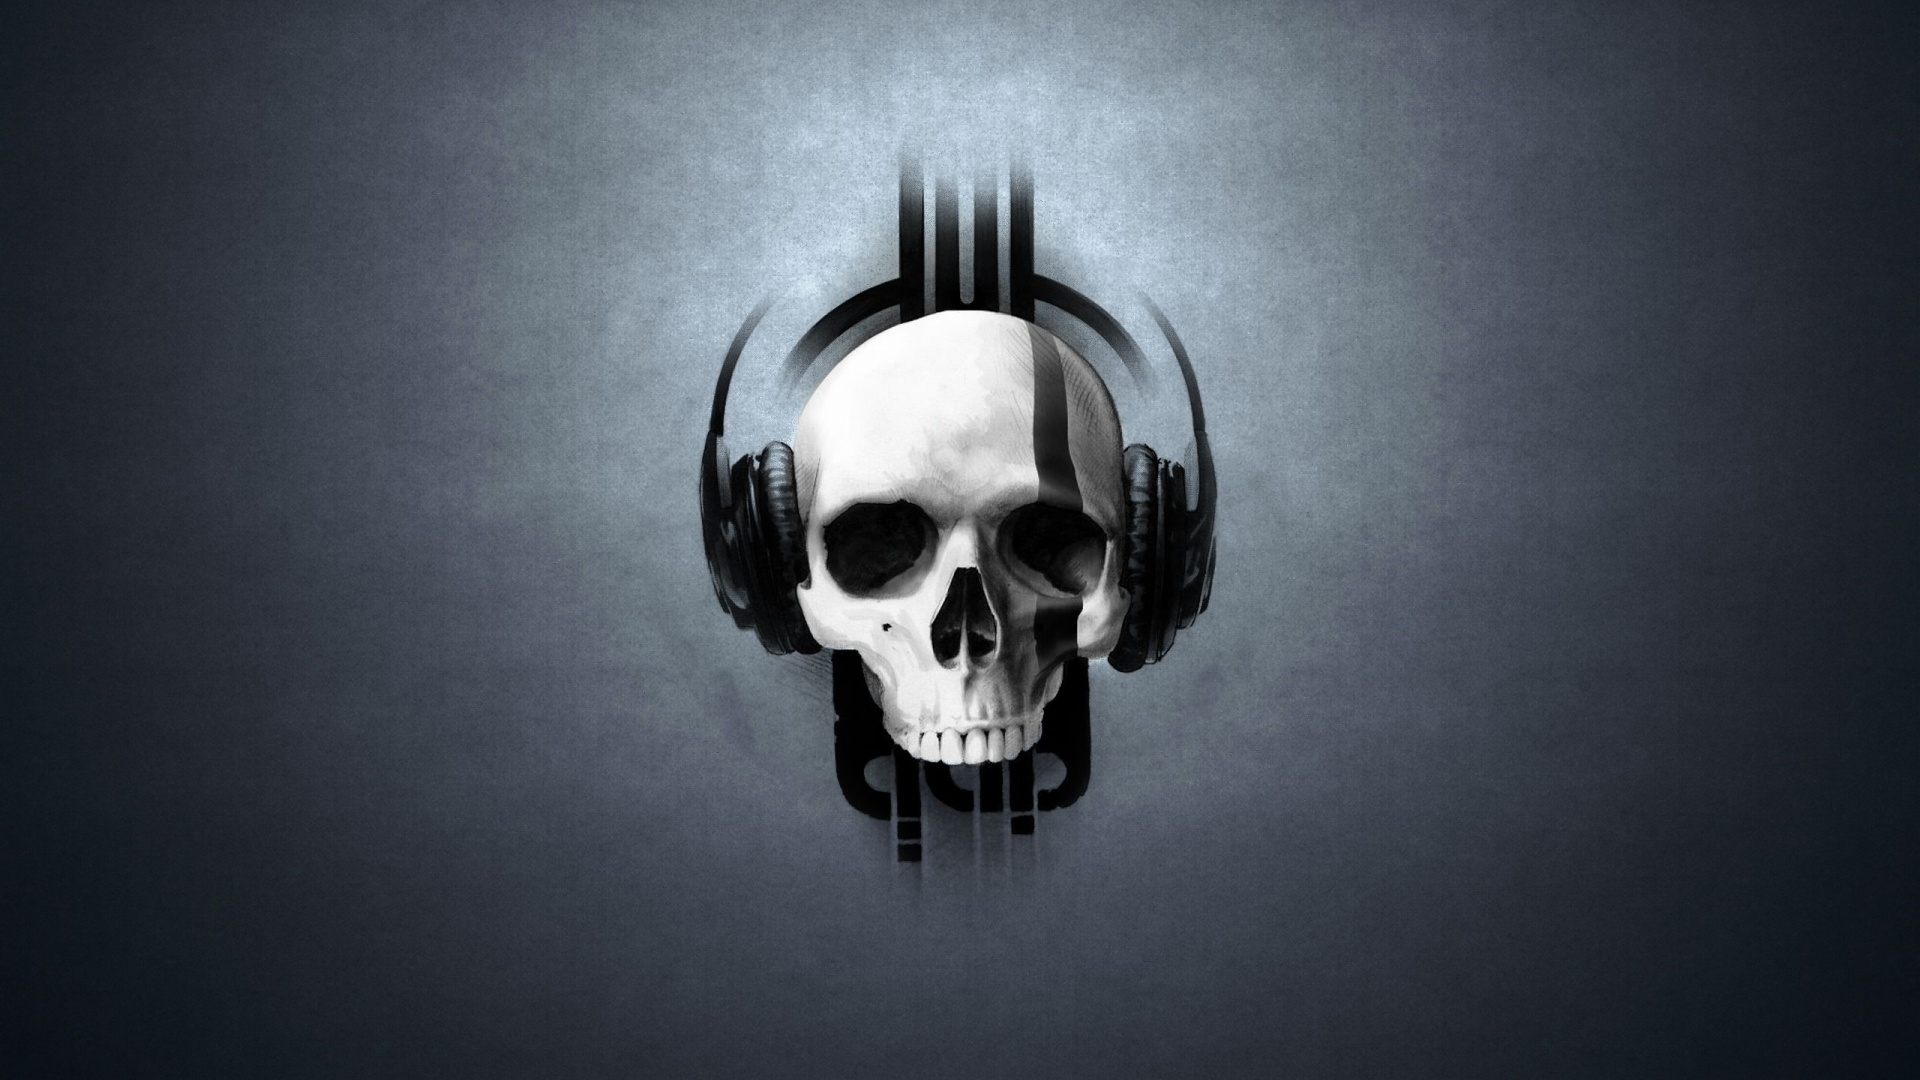 skull hd wallpapers 09706 - baltana